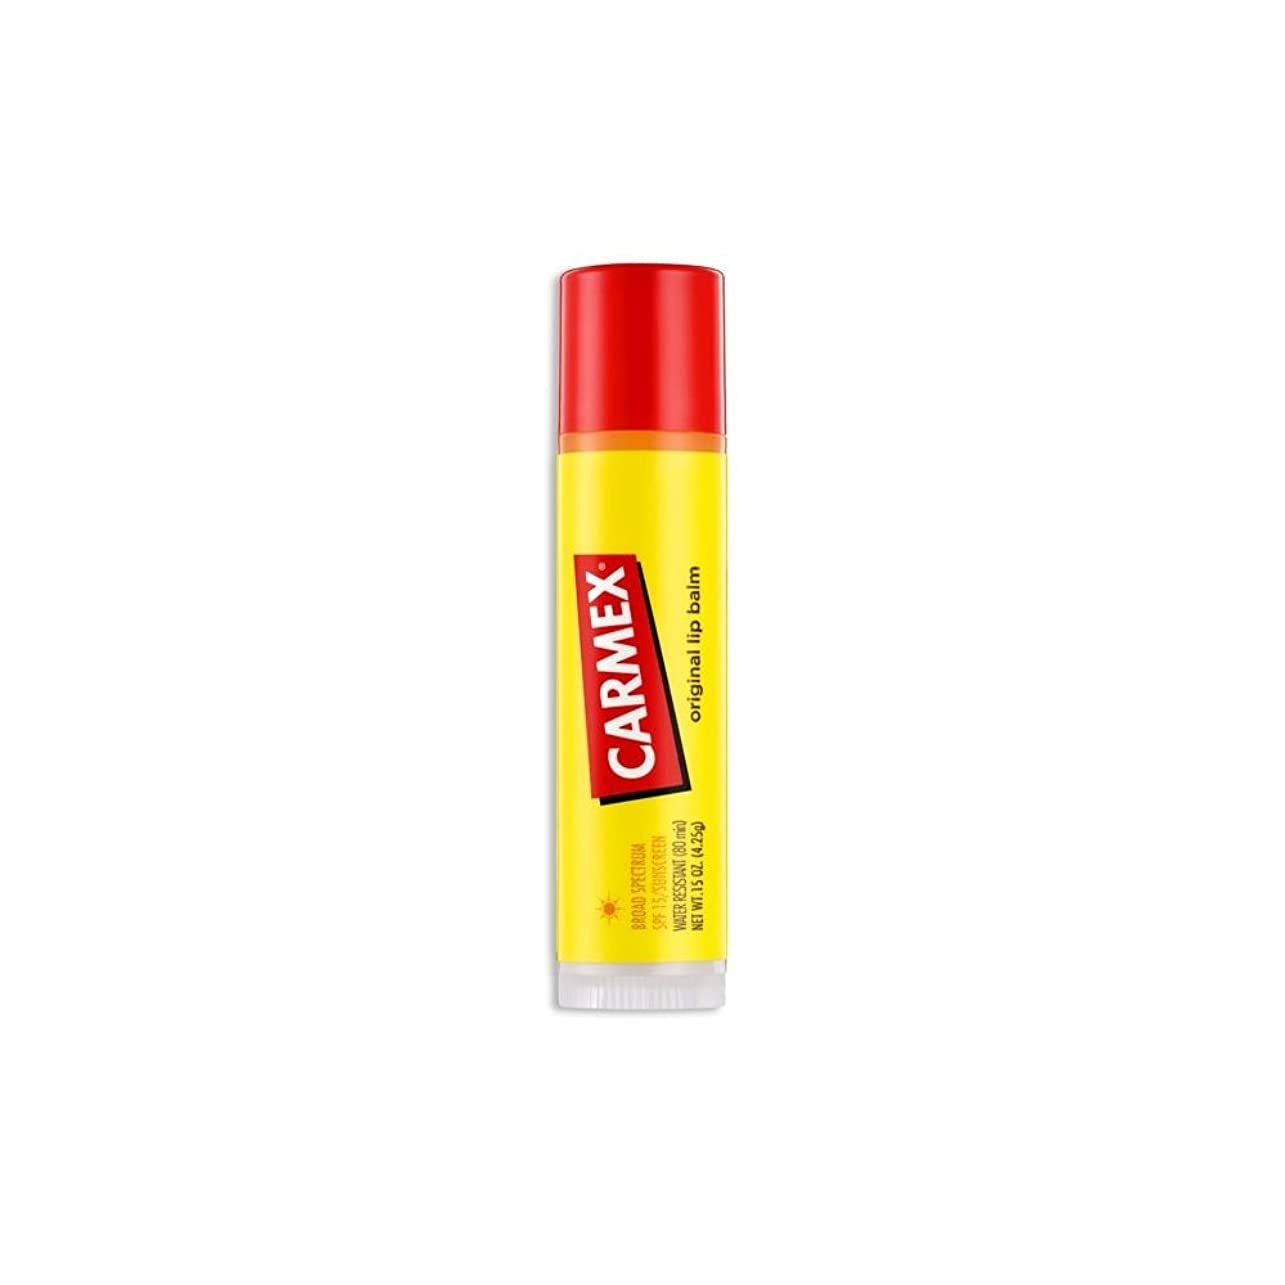 ゆるいテラス司法(6 Pack) CARMEX Original Flavor Sticks Original (並行輸入品)